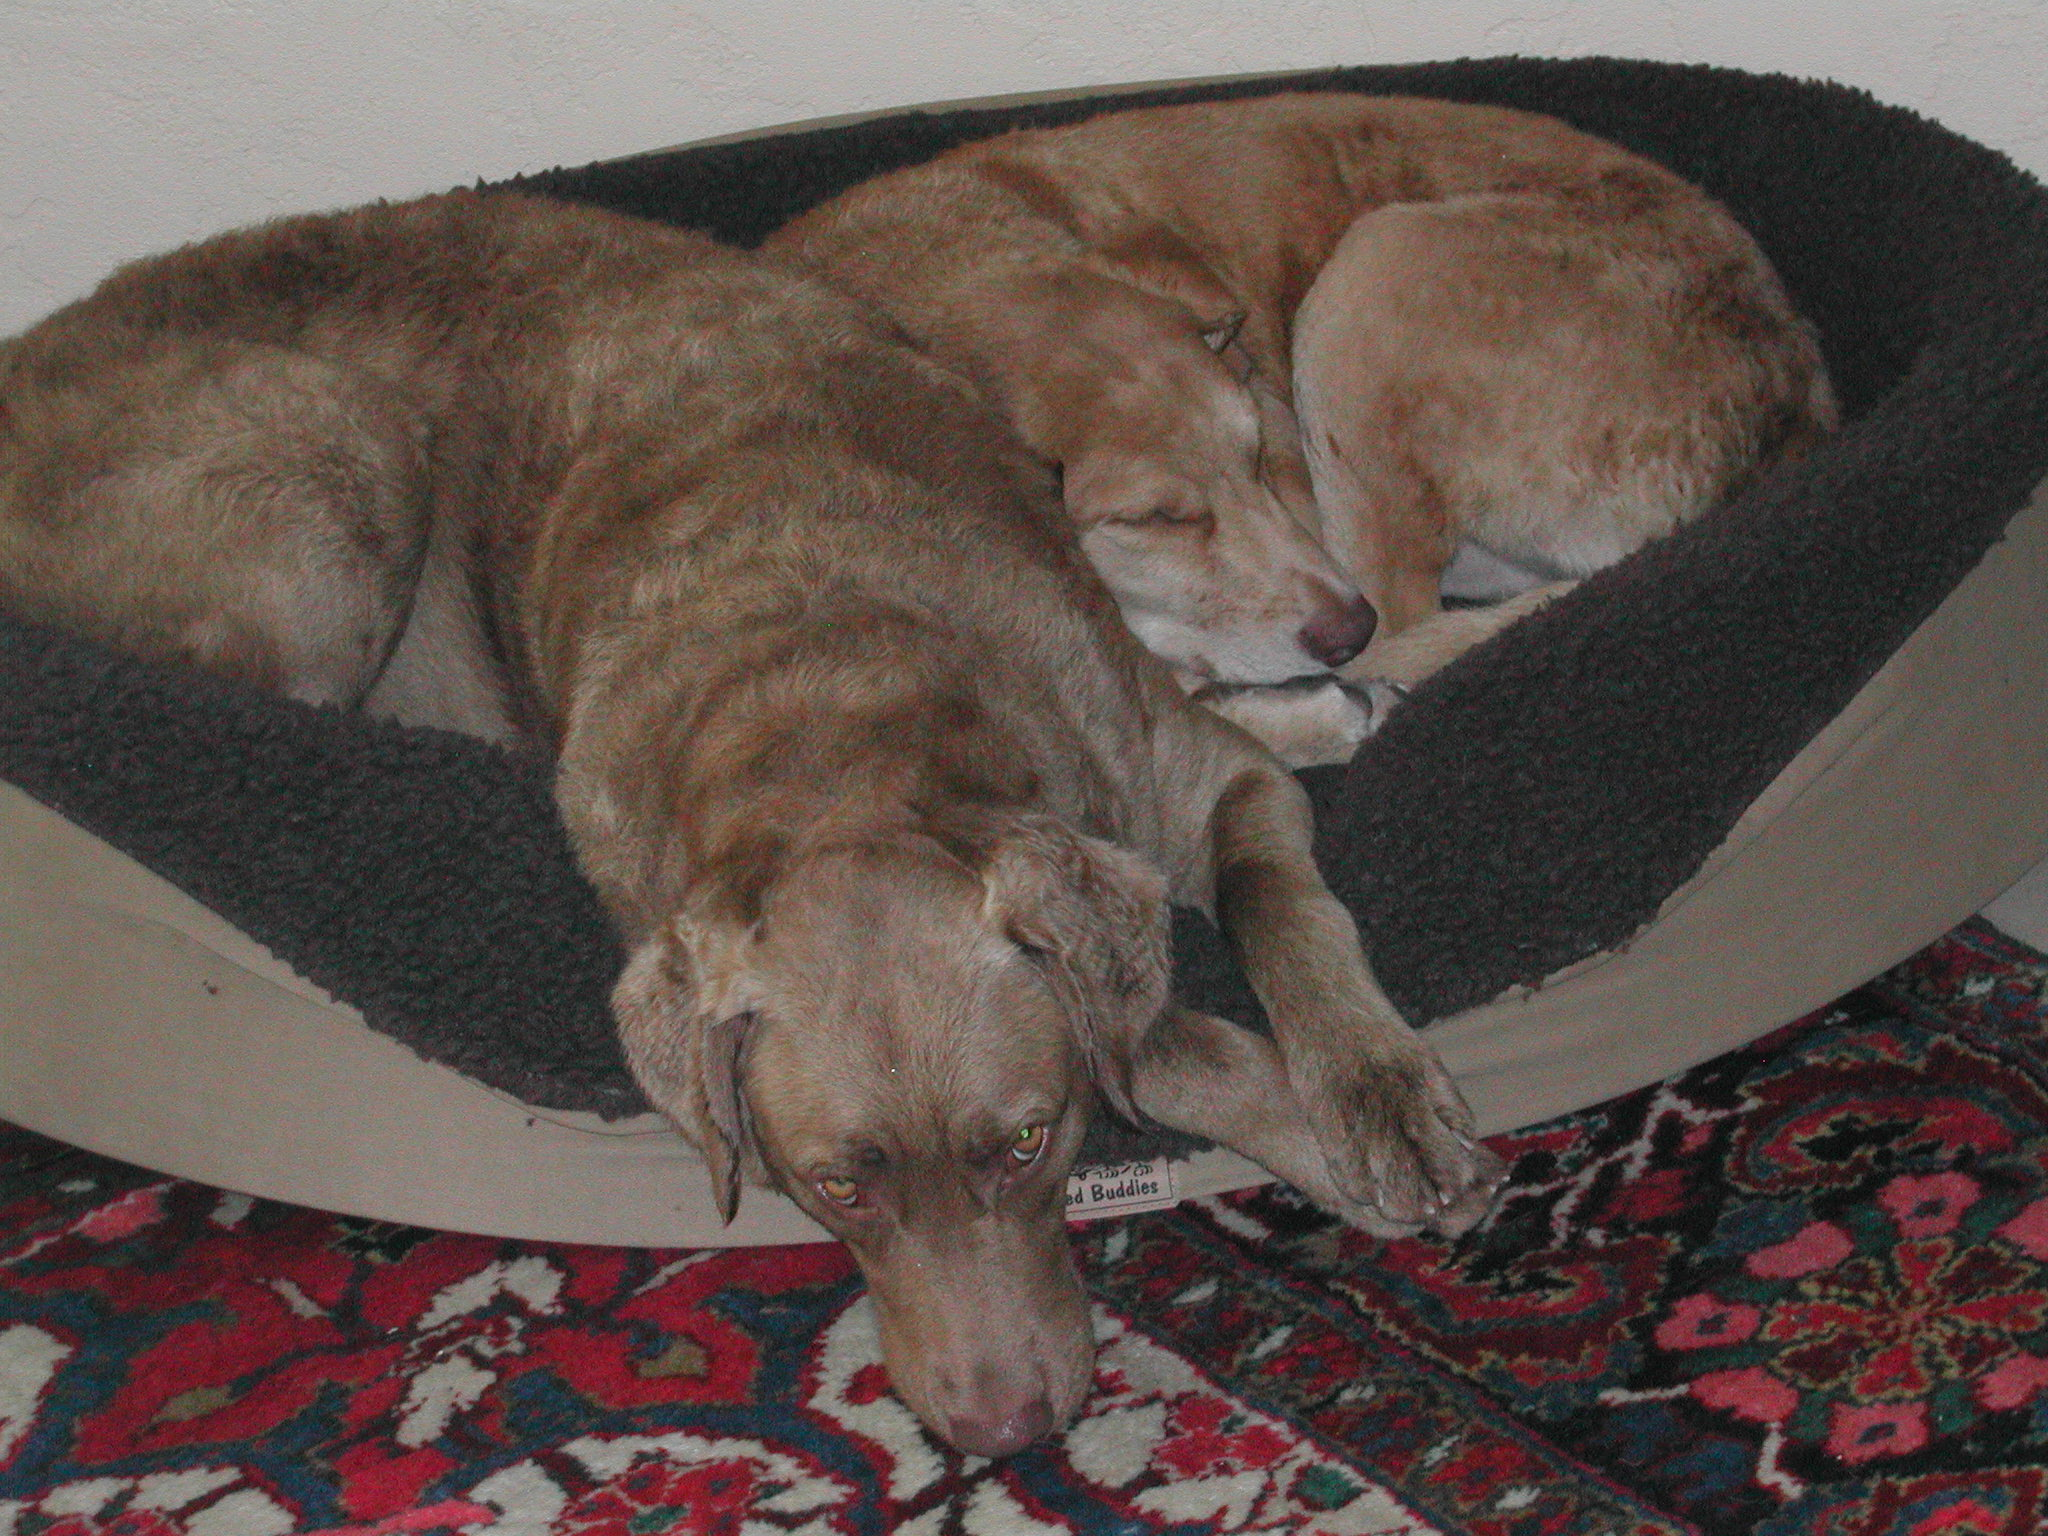 Dogs10-23-05_004